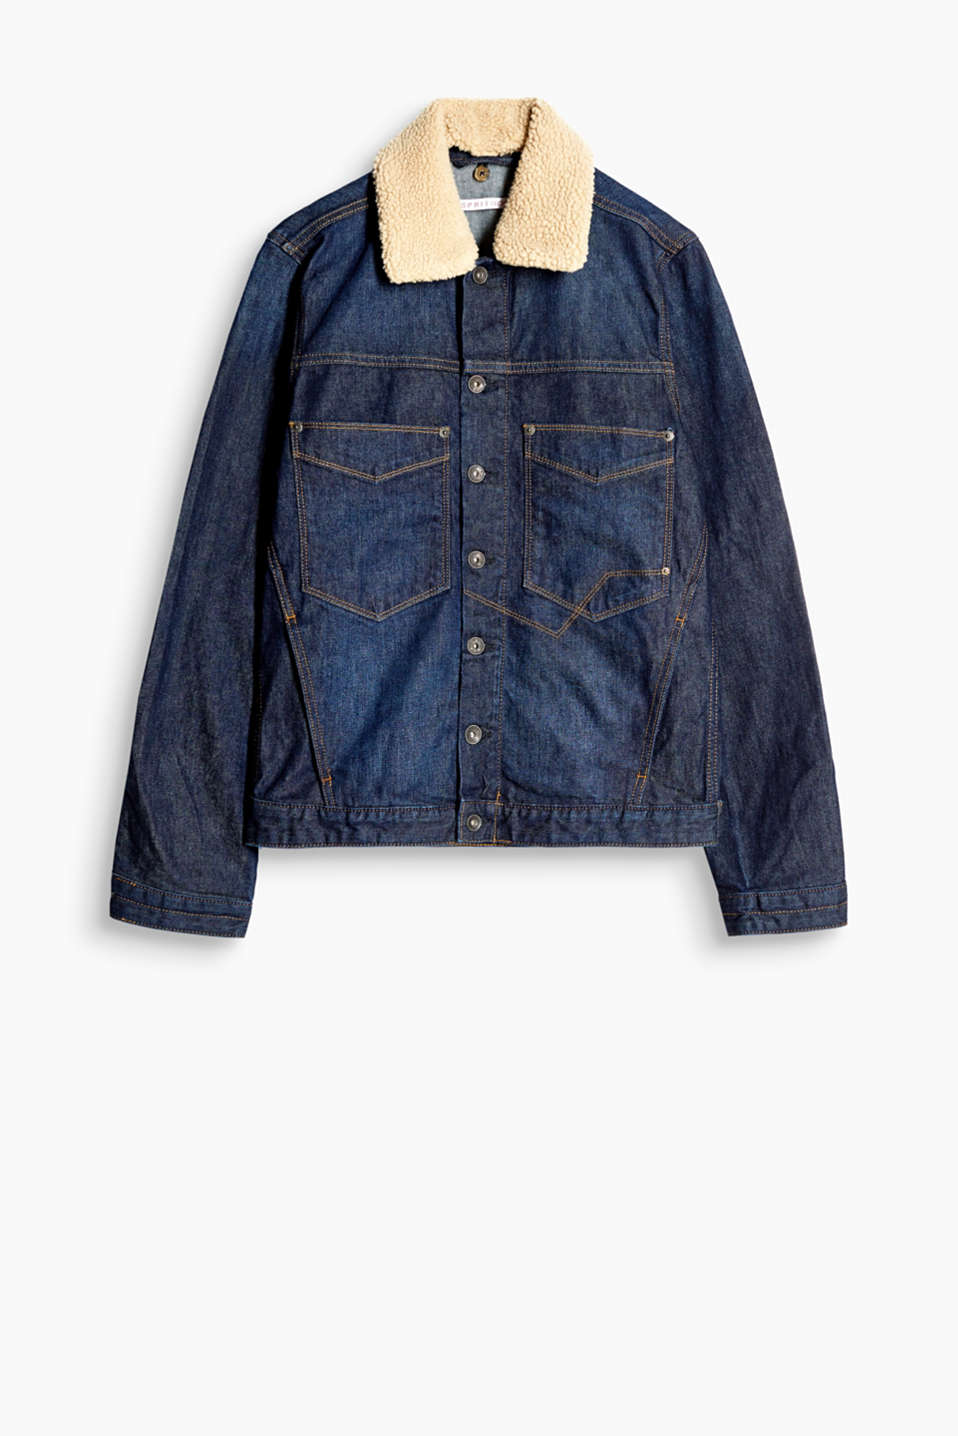 Stretch cotton denim jacket with a detachable sheepskin look collar and patch breast pockets